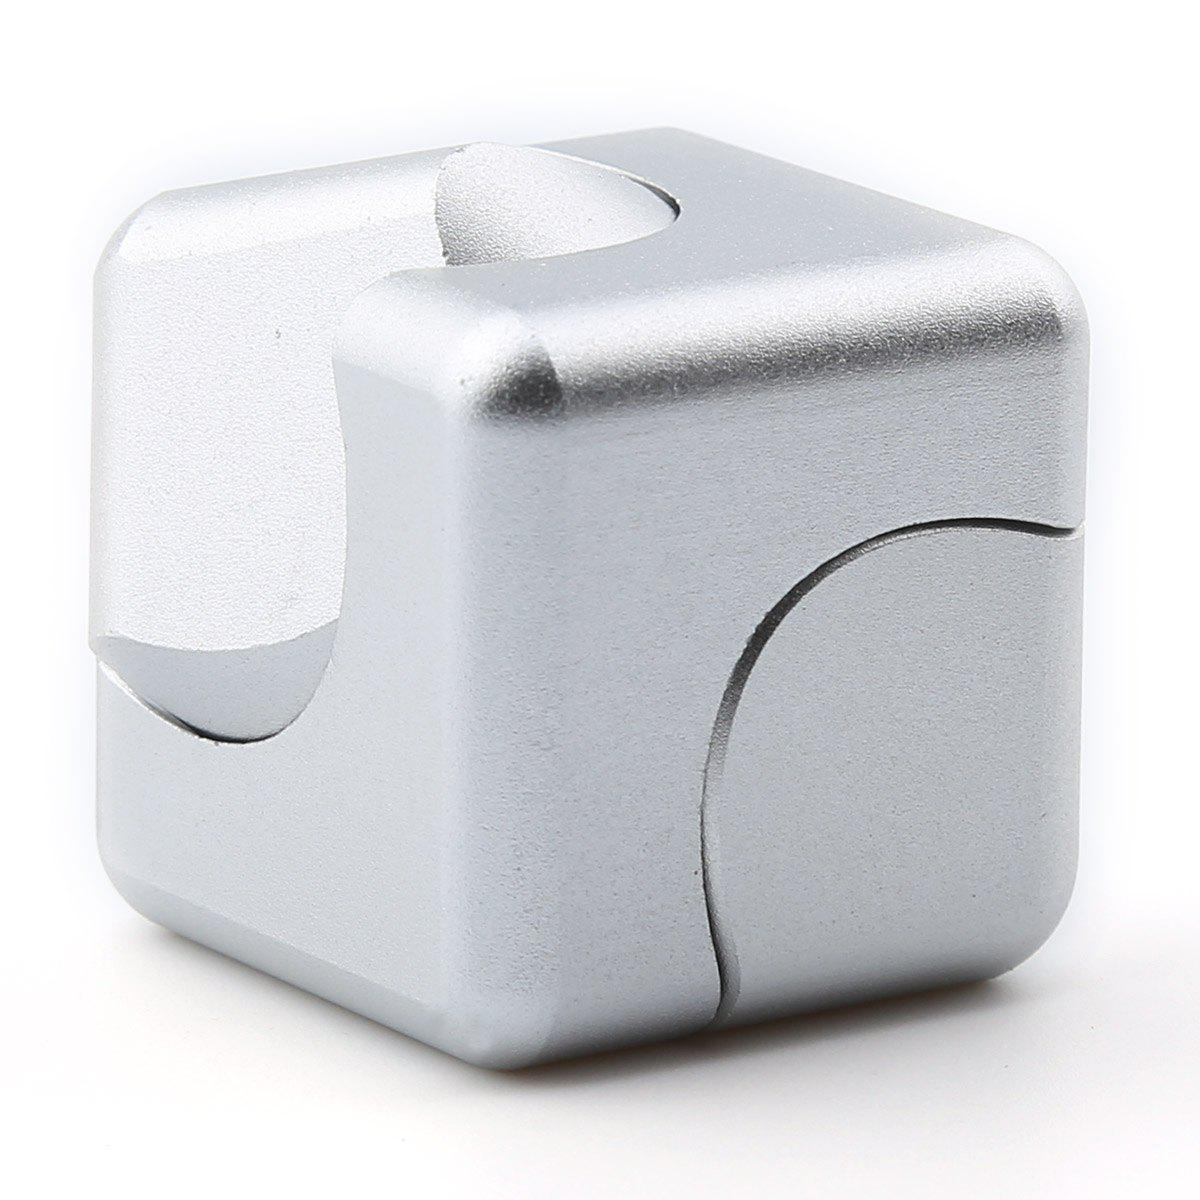 Focus Toy Alloy Fidget Cube Spinner - SILVER